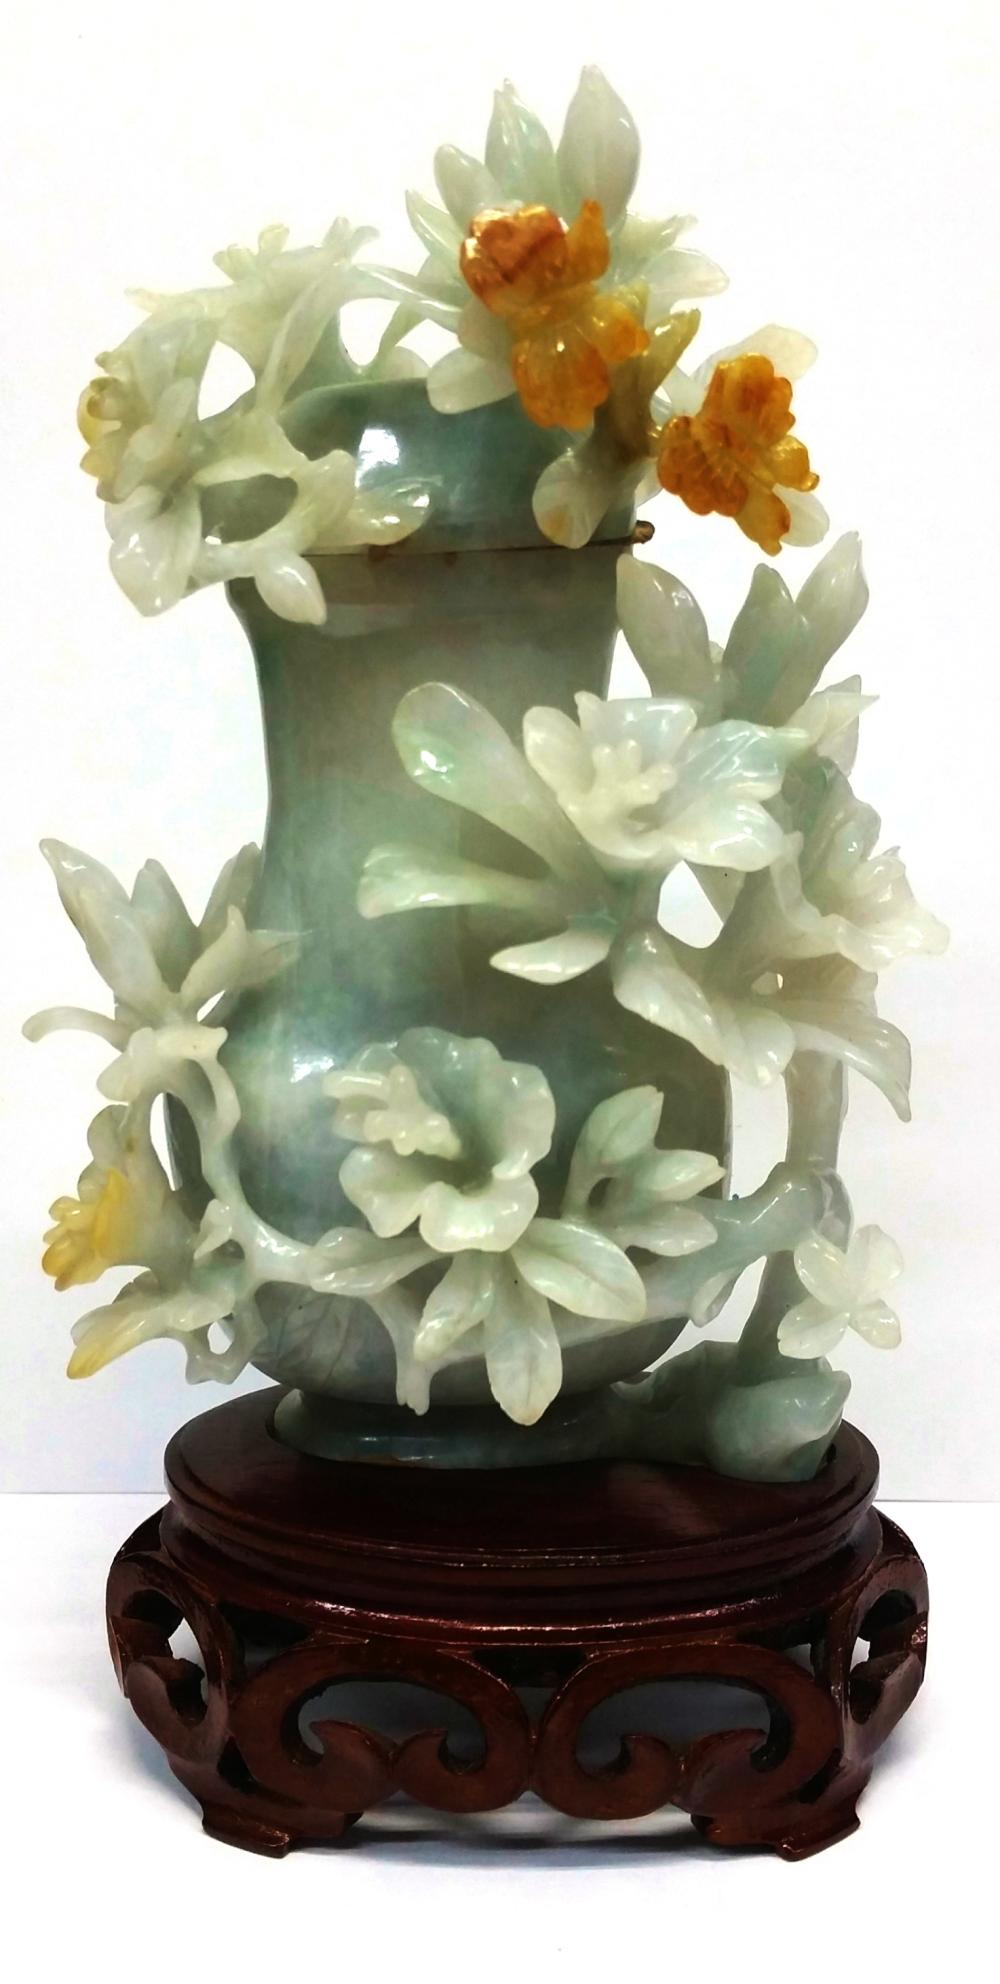 Antique Chinese Pale Celadon With Orange Vein White Jadeite Jade Heavily Carved Lidded Vase Urn With Encrusted Flowers 5.25in Kassias NYC Provenance